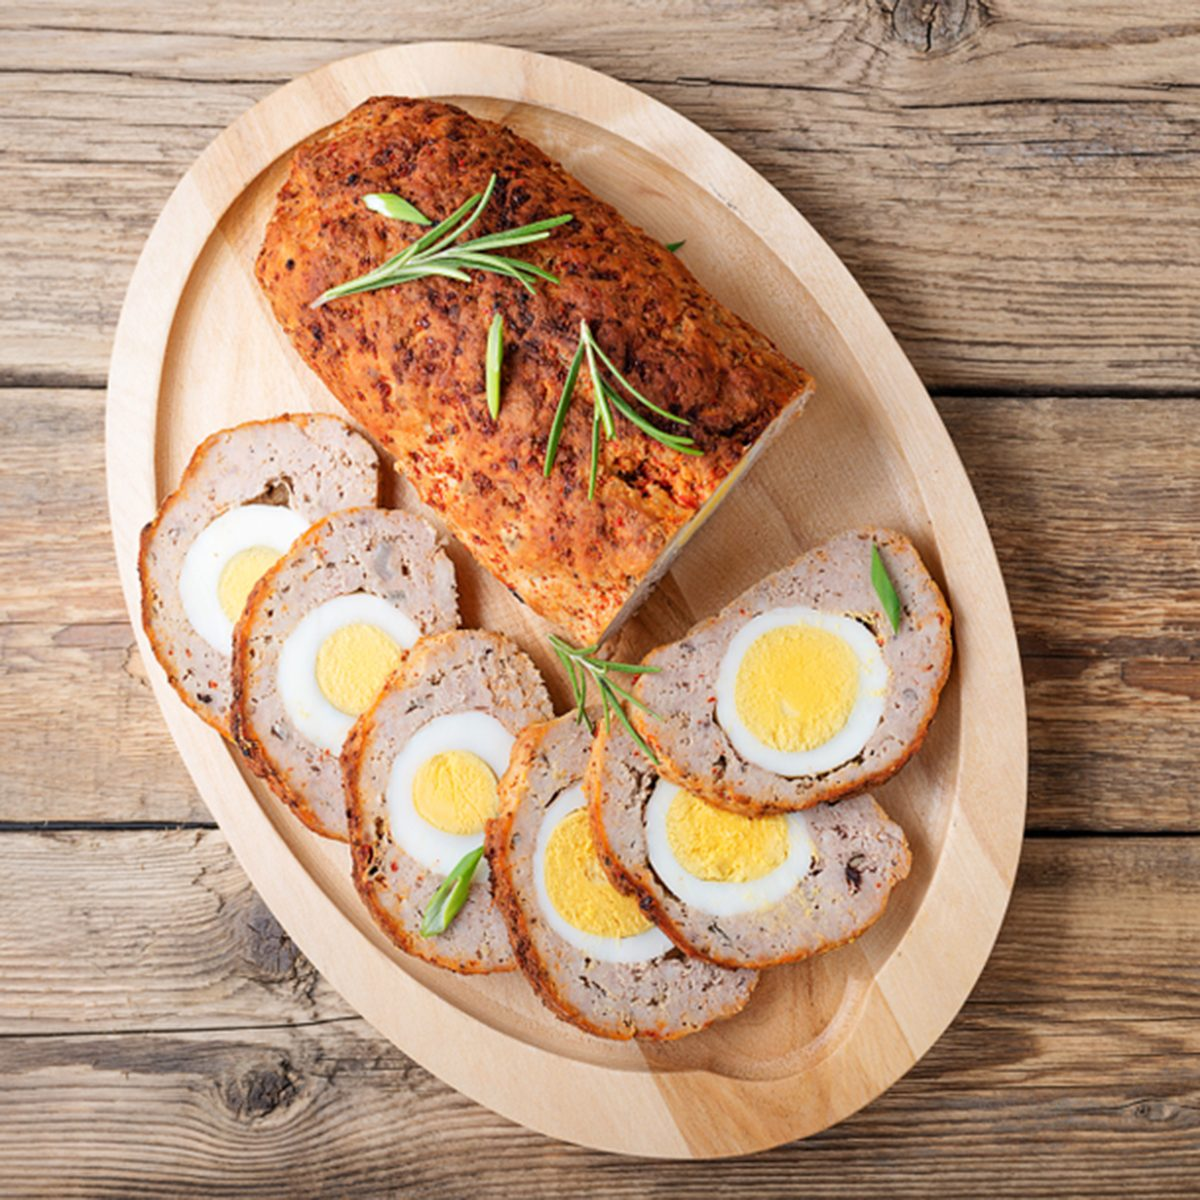 Baked meatloaf with boiled eggs.